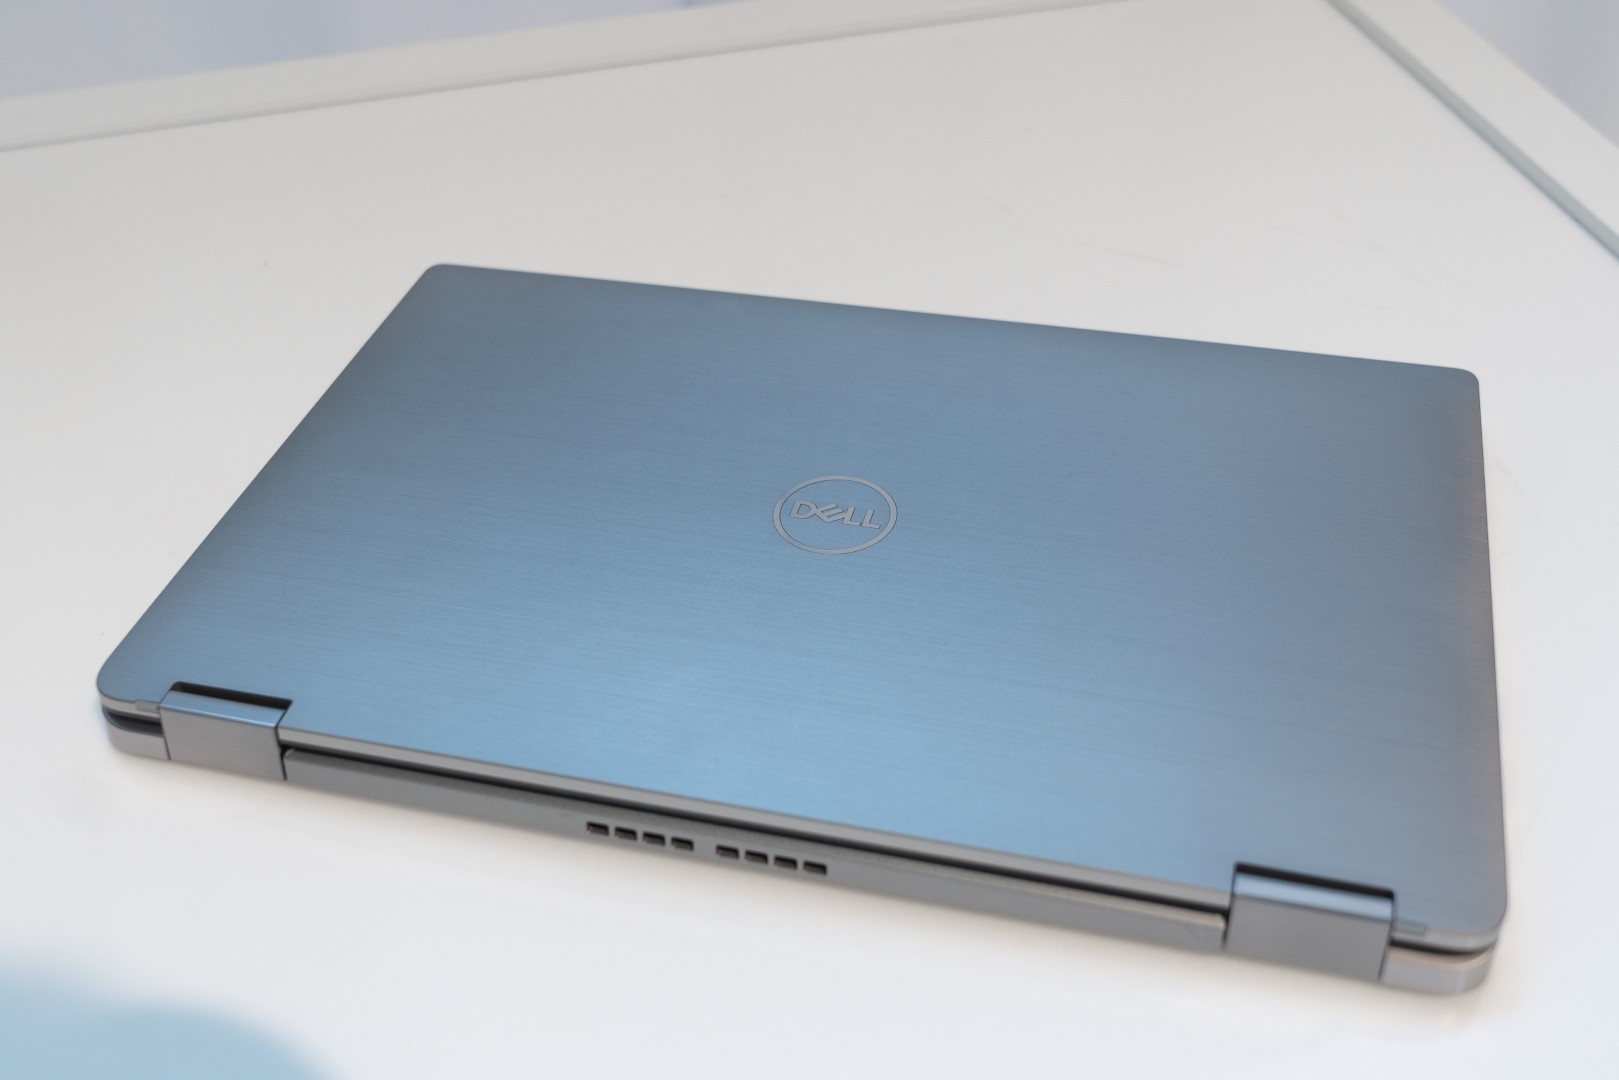 Dell Latitude 7400 2-in-1 can sense when you're up to 5 feet